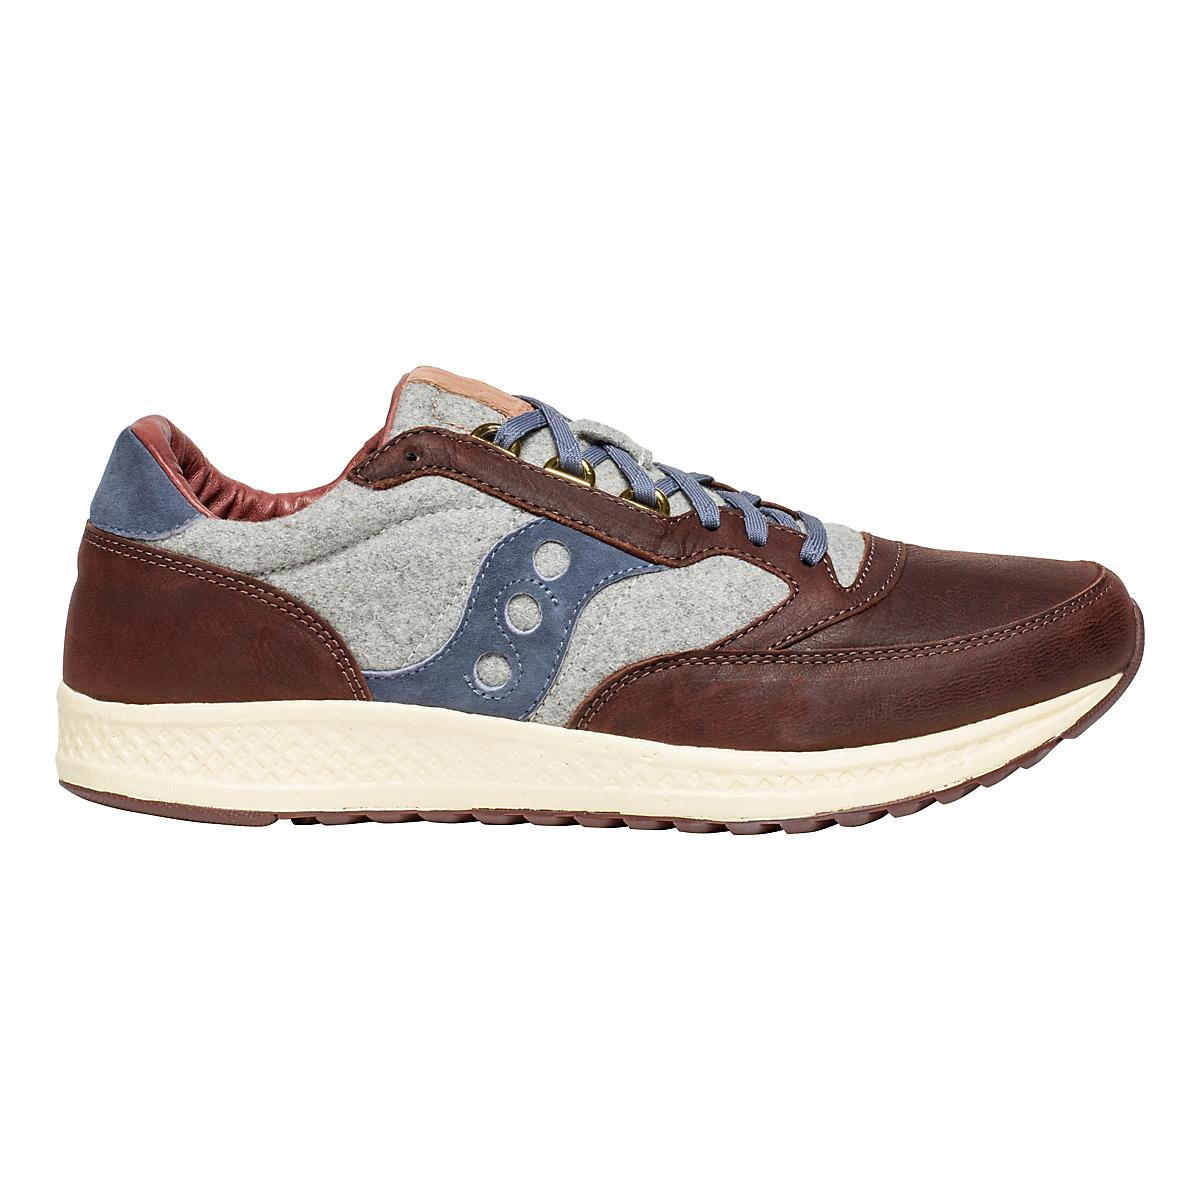 b1a689bc8a73 Mens Saucony Freedom Runner Ranger Casual Shoe at Road Runner Sports